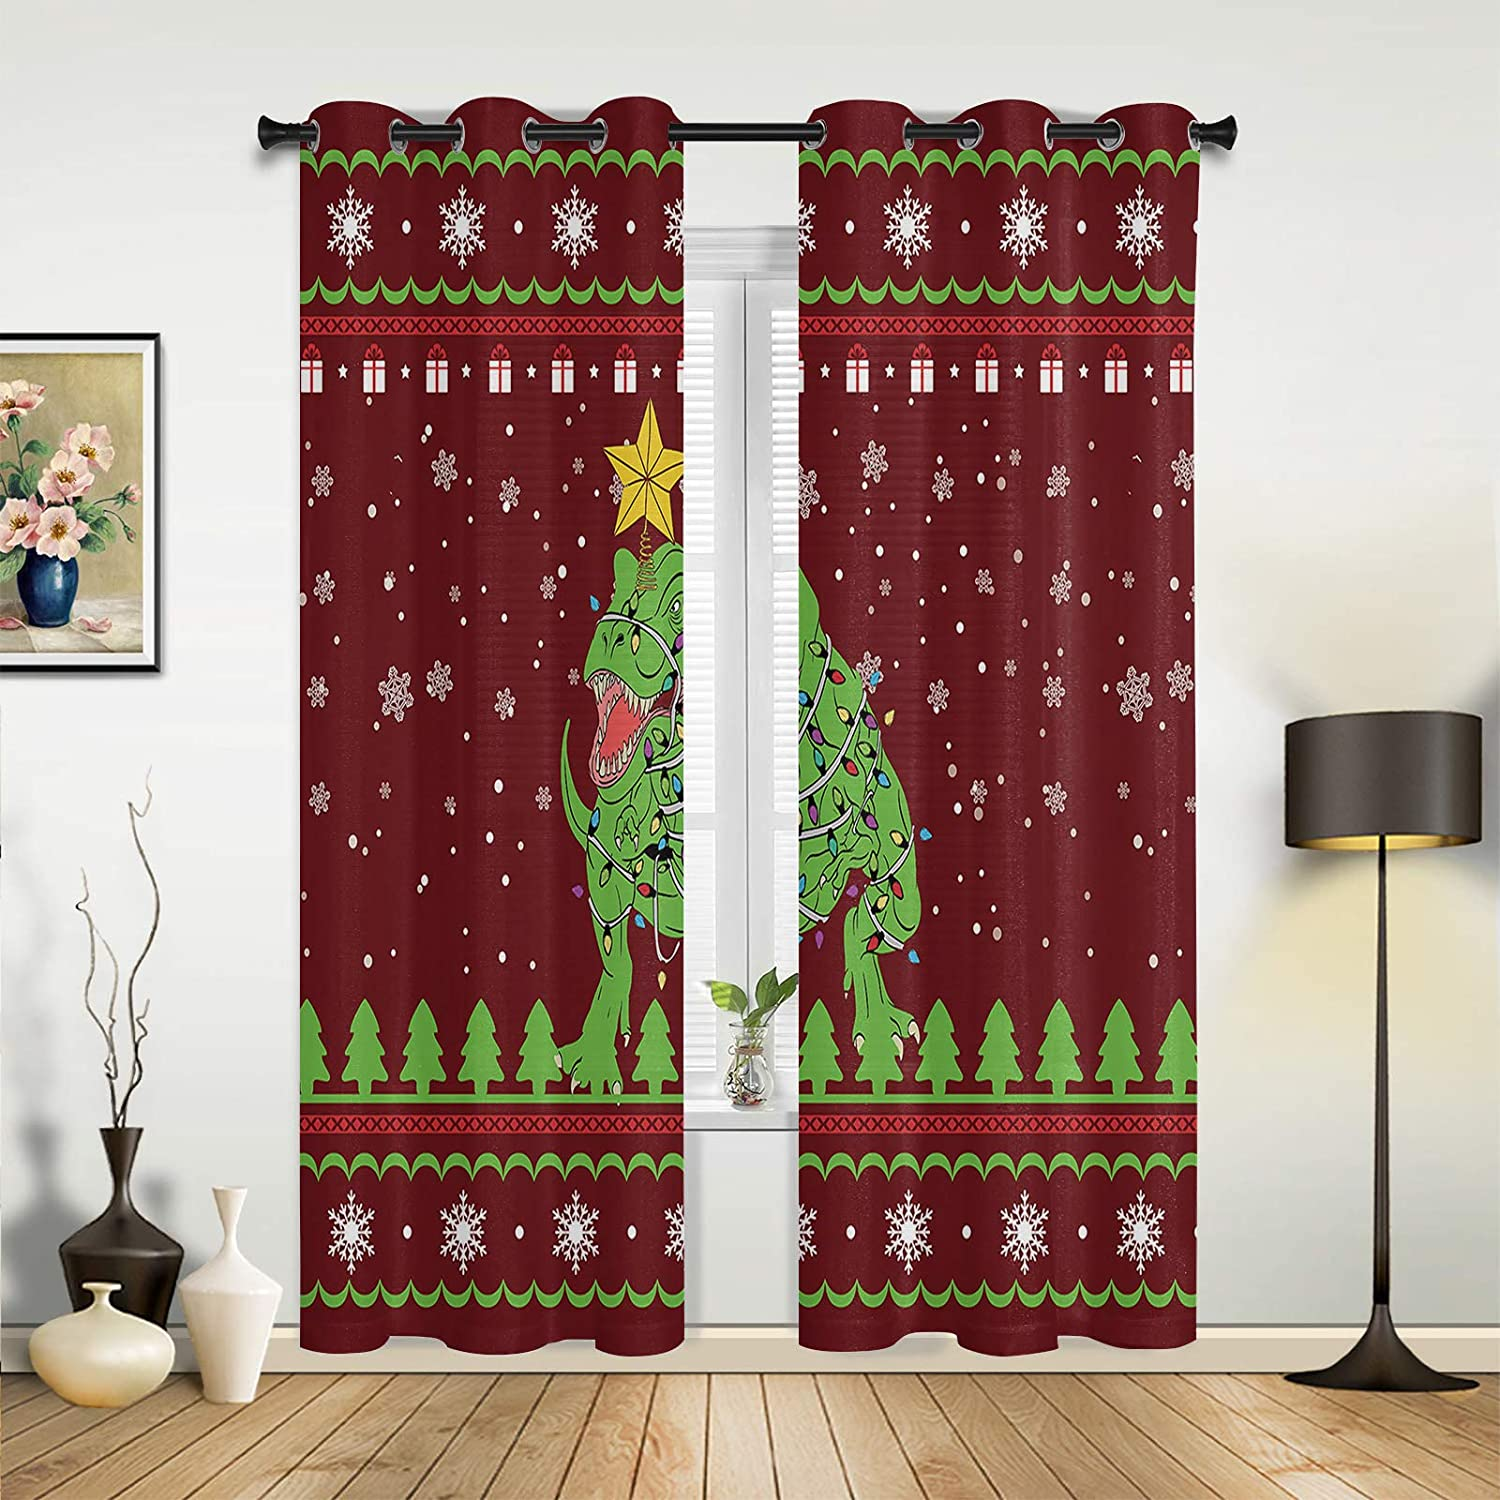 Window Curtains Drapes Panels Christmas excellence Snowflake Dinosaur Gift Discount mail order